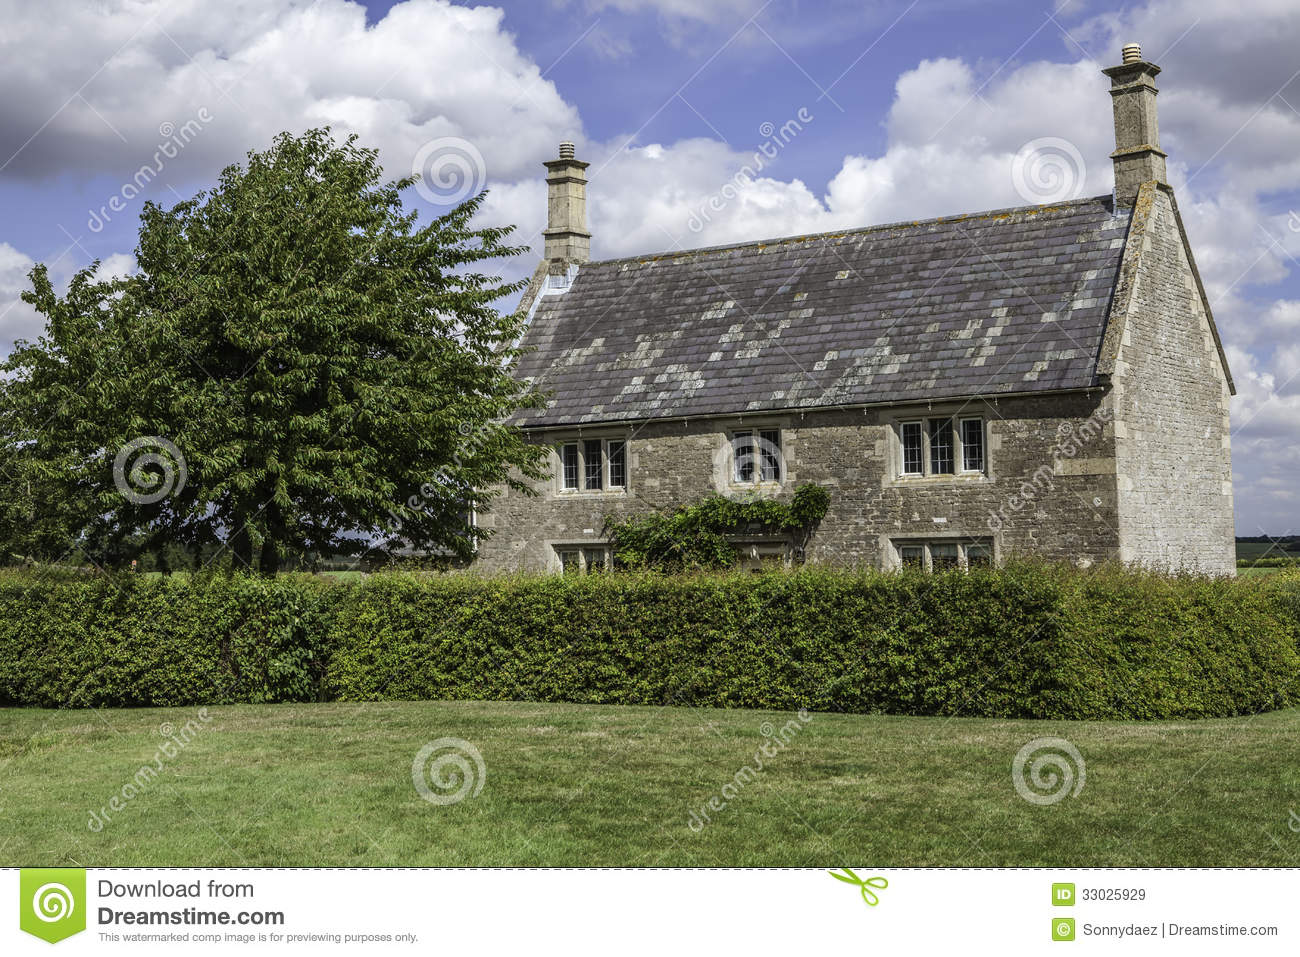 Beatiful english country house royalty free stock images for Country house online